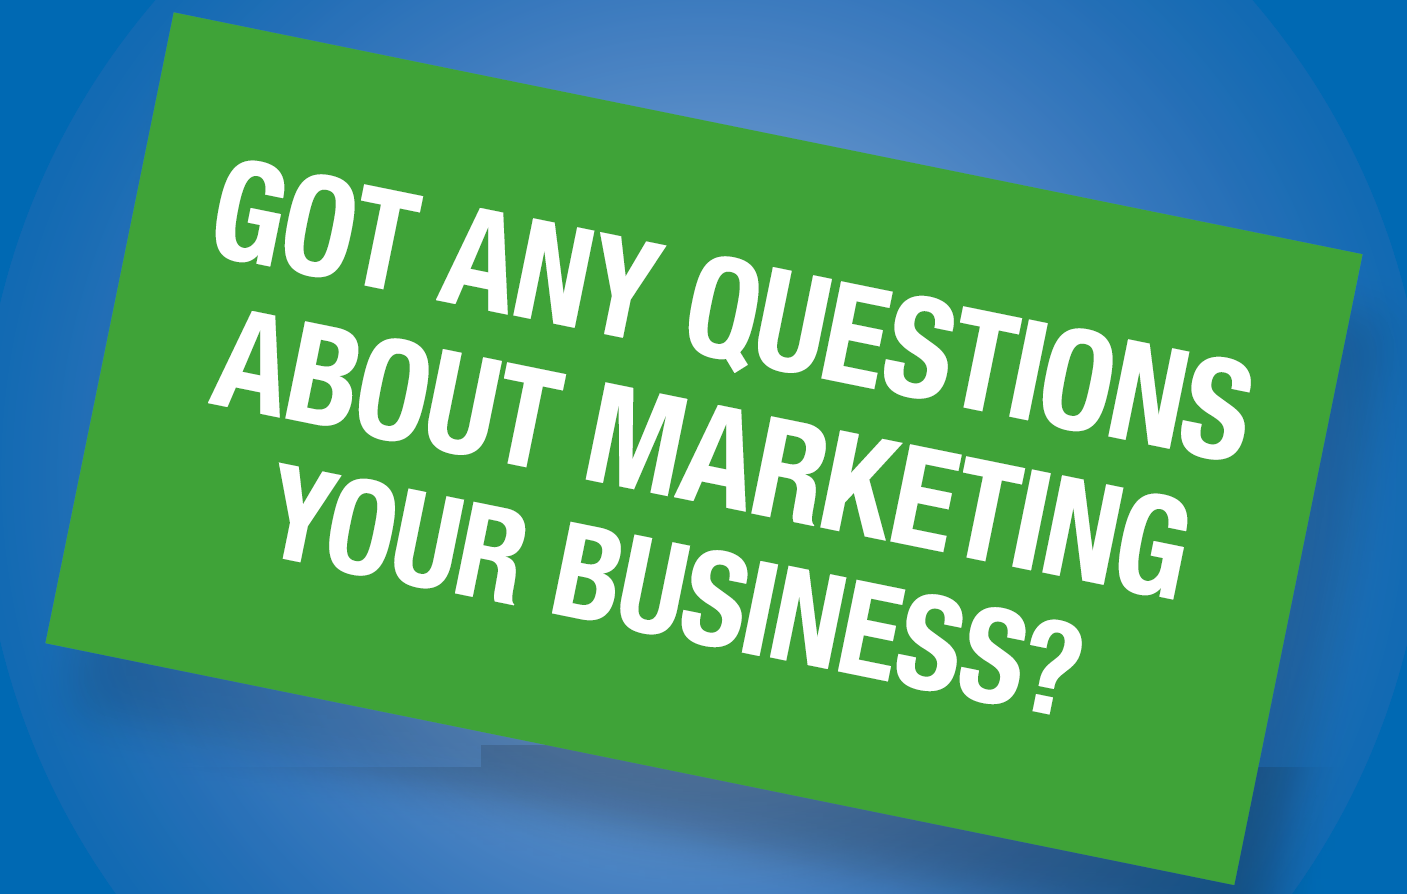 Marketing-Questions-Marketing-Advice-Centre-South-Yorkshire-Expo